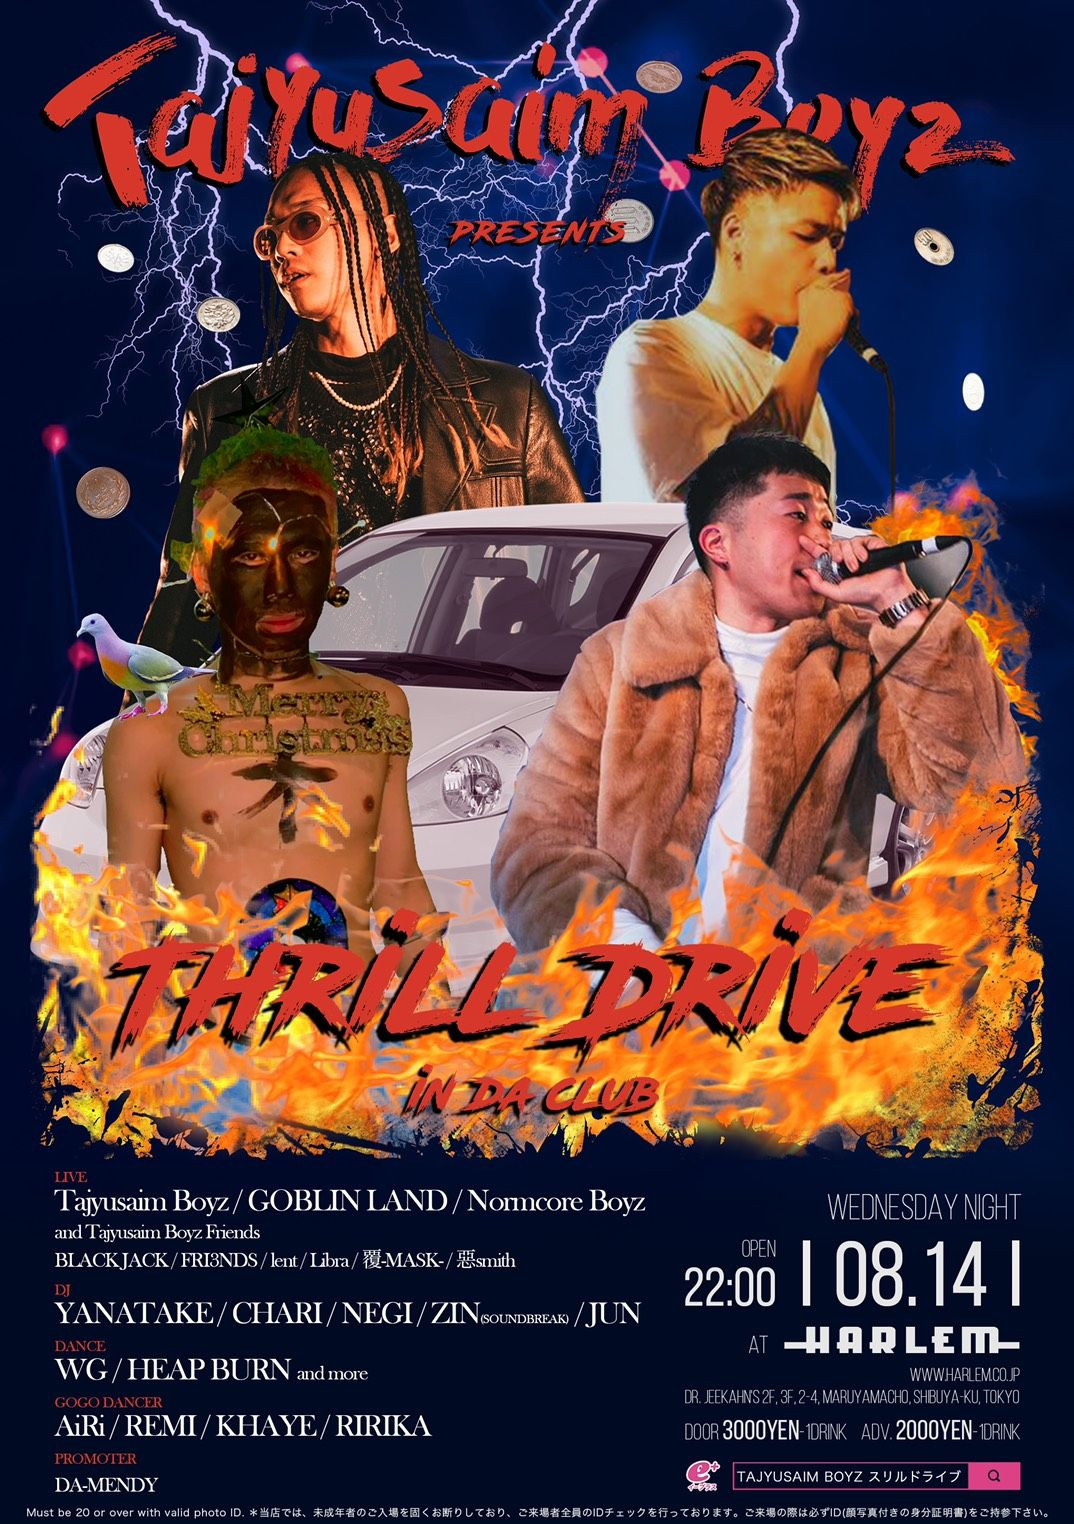 "Tajyusaim Boyz presents ""THRILL DRIVE -in da club-"""